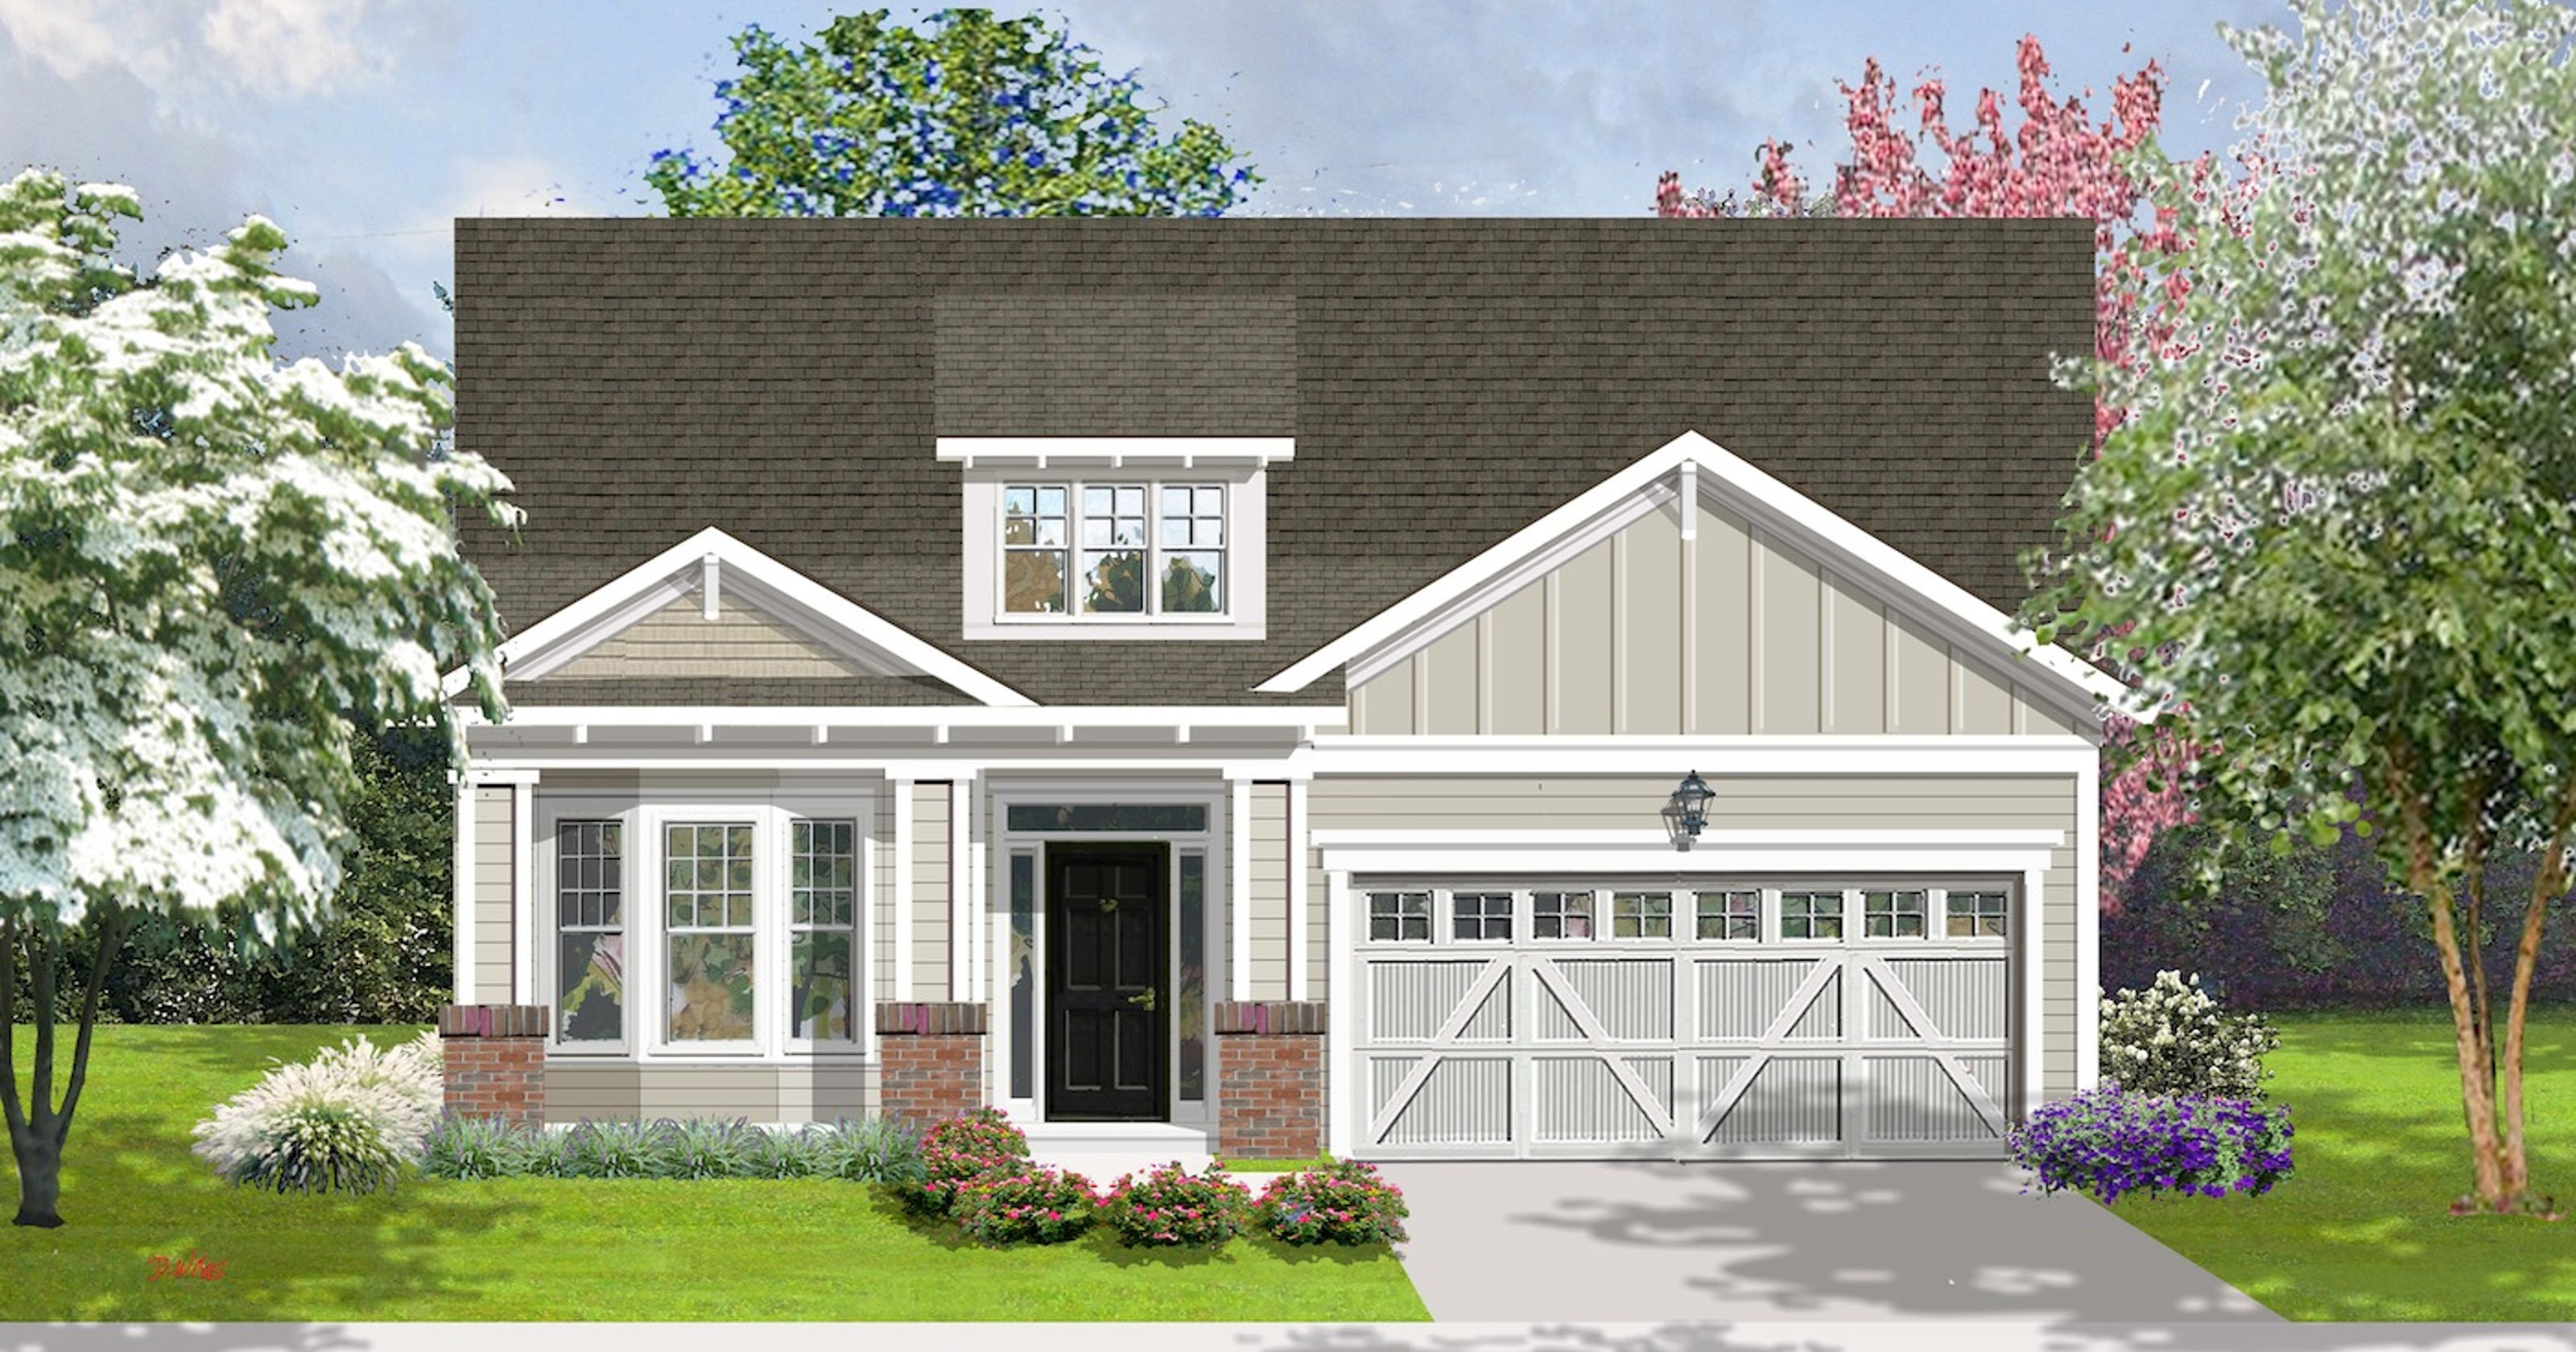 K Hovnanian Floor Plans: K. Hovnanian Homes Introduces Four All-new Floor Plans At